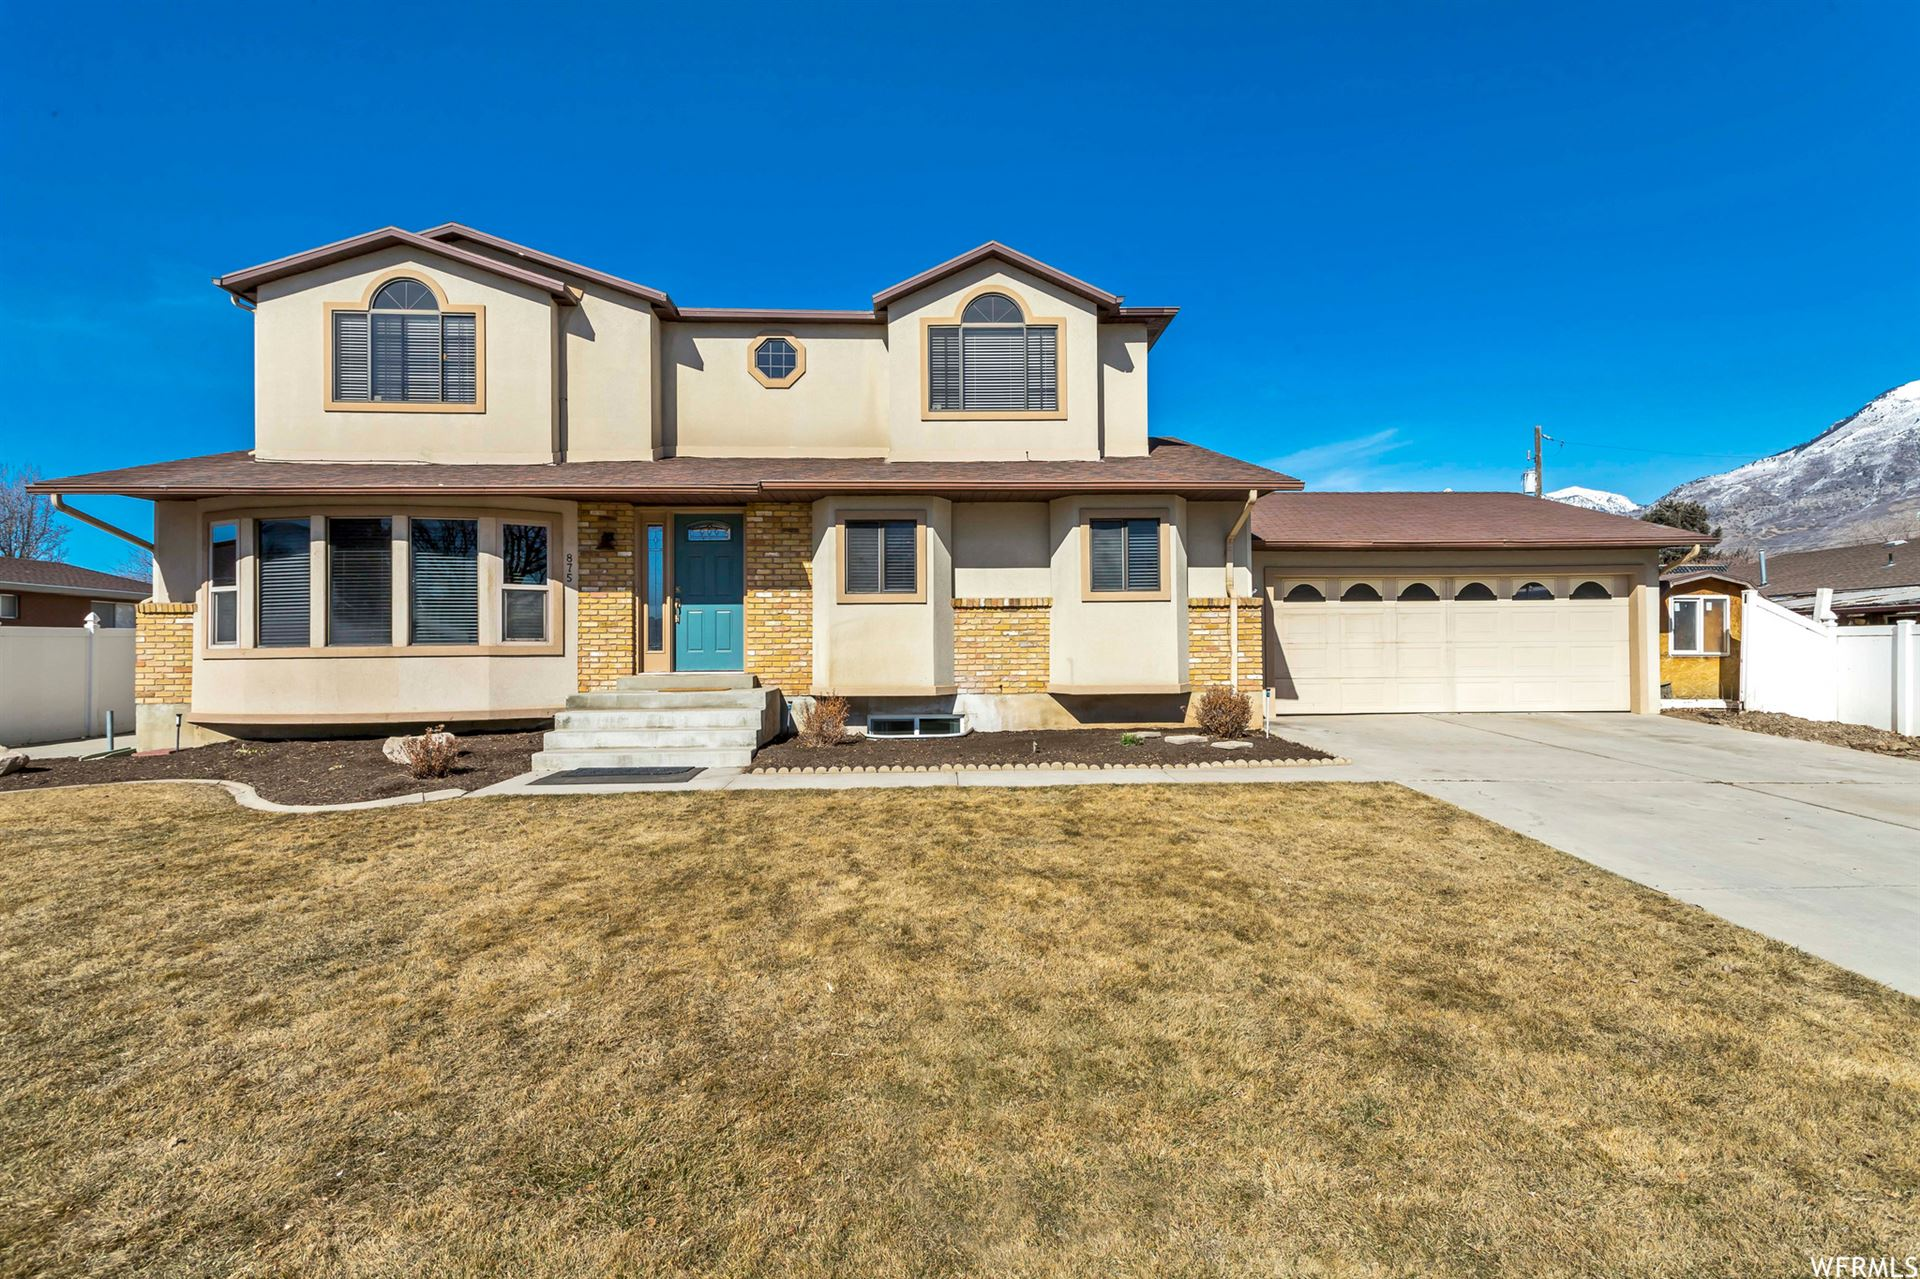 Photo of 875 E 530 N, American Fork, UT 84003 (MLS # 1726748)